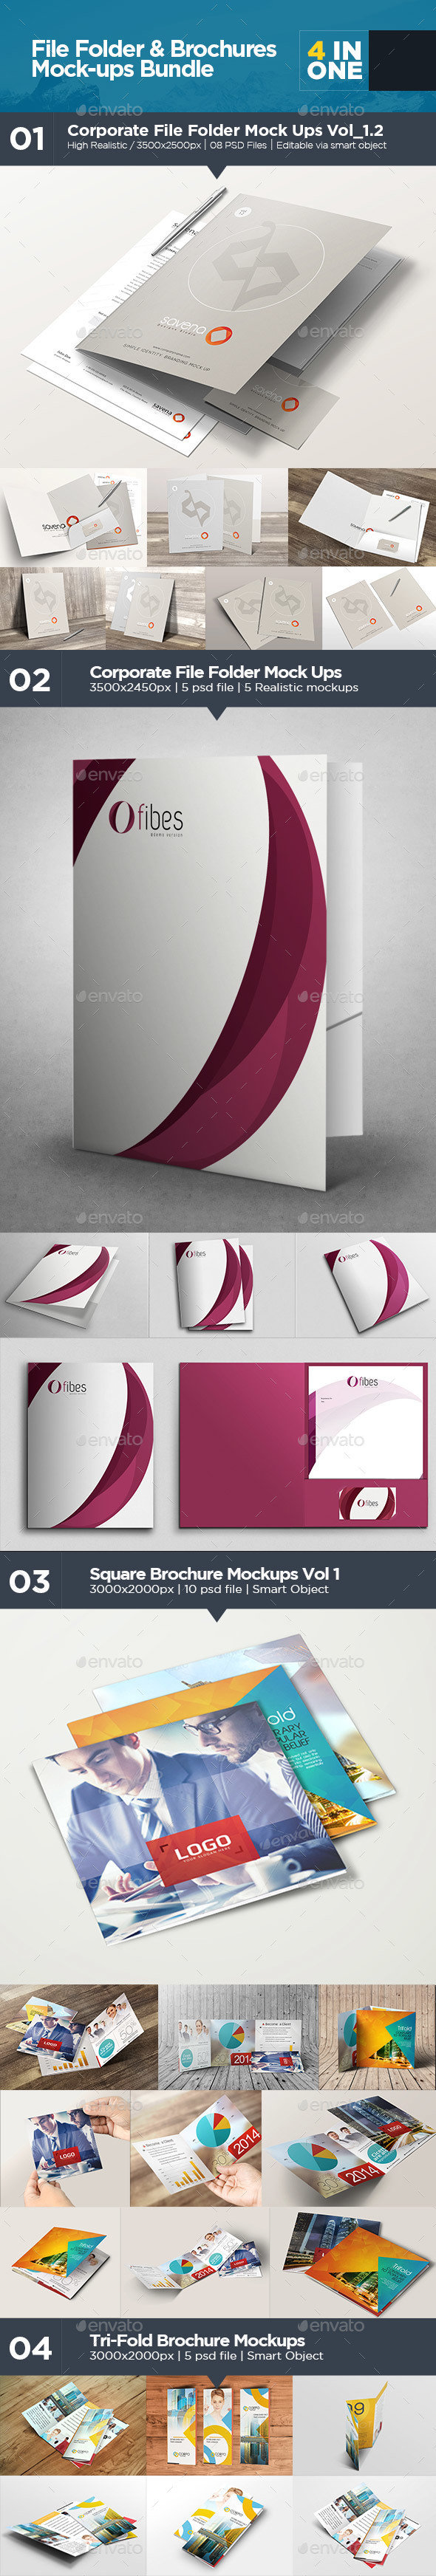 File Folder & Brochures Mock-ups Bundle